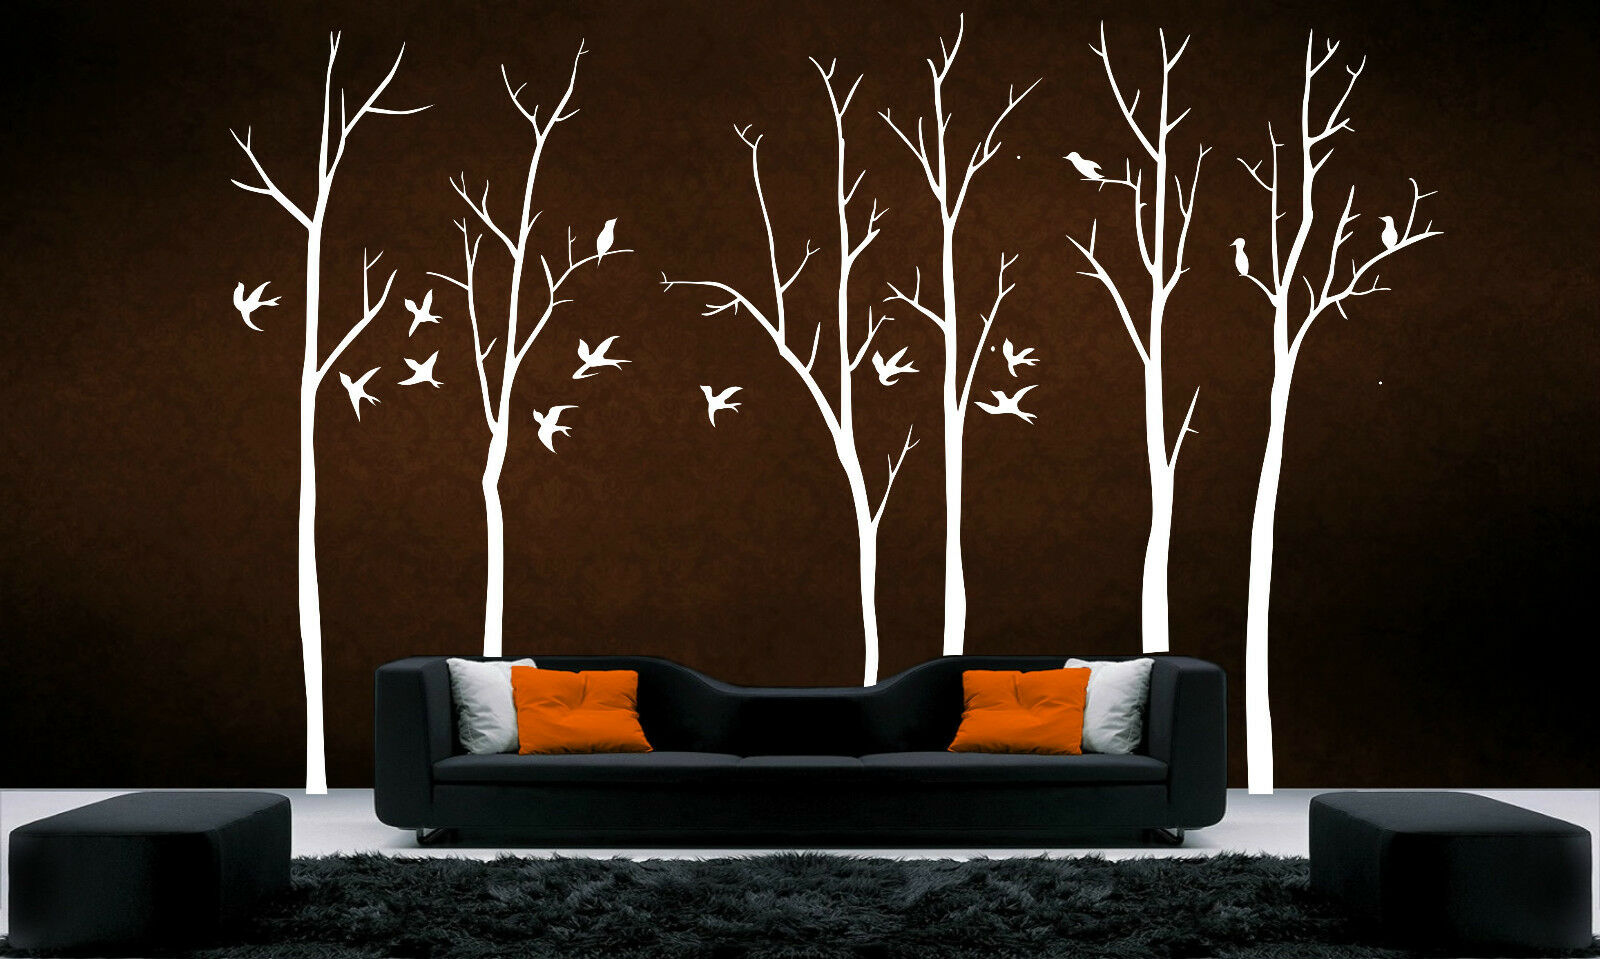 Home Decoration - Stunning Tree Branch II Wall Art Decal Removable Vinyl Stickers Mural Home Decor